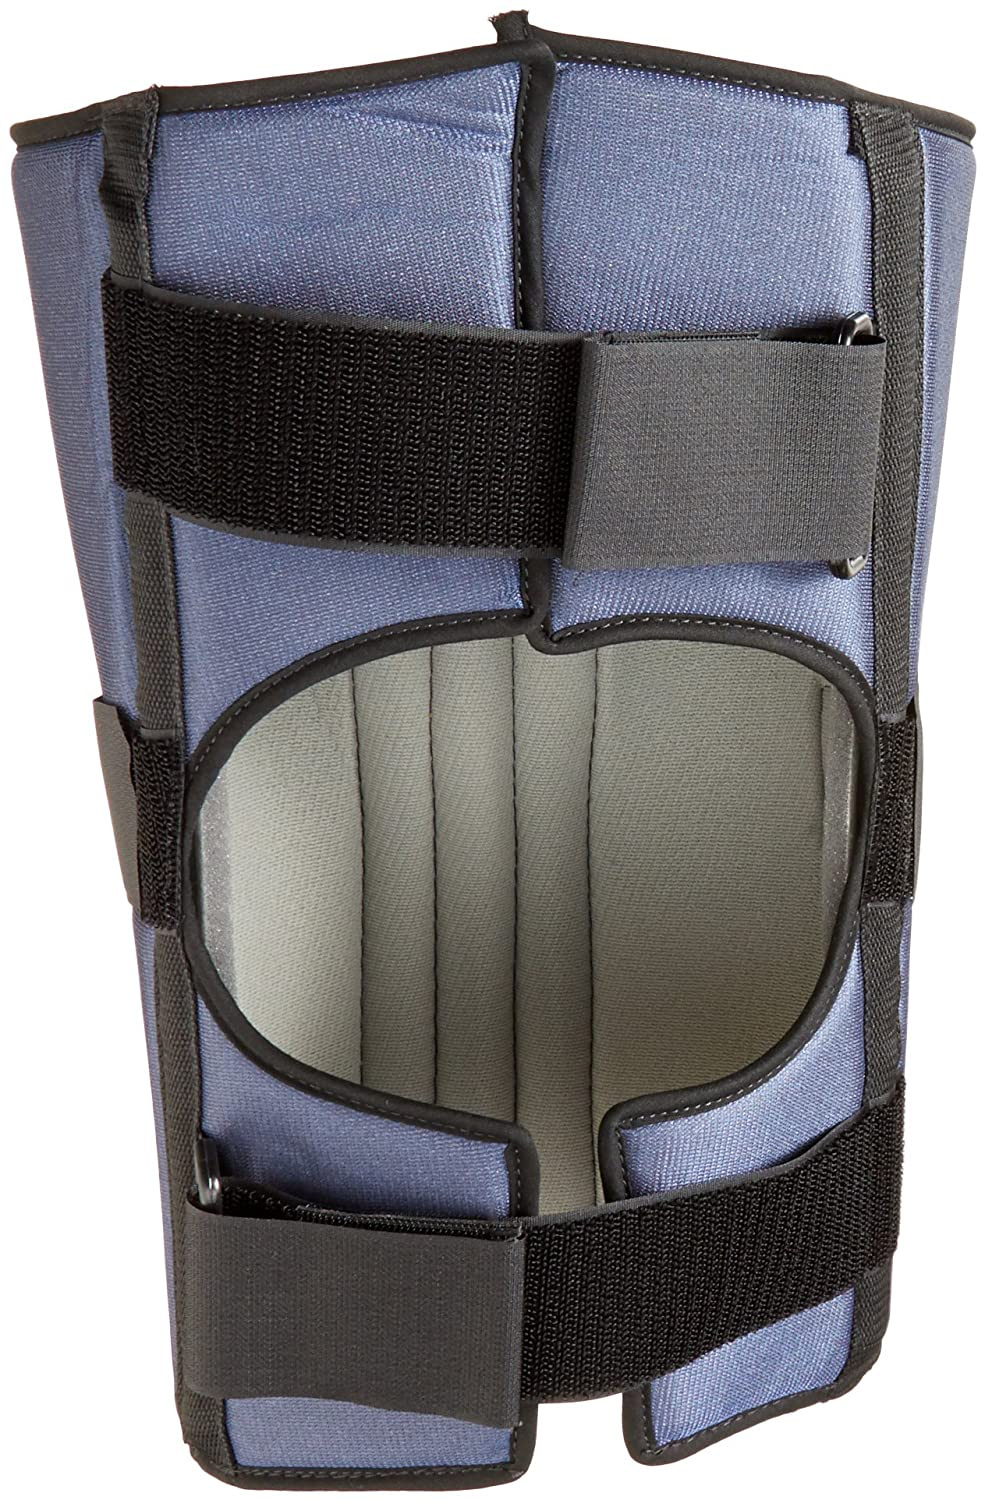 Bird & Cronin 08142415 Comfor Knee Immobilizer with Patella Strap, 12